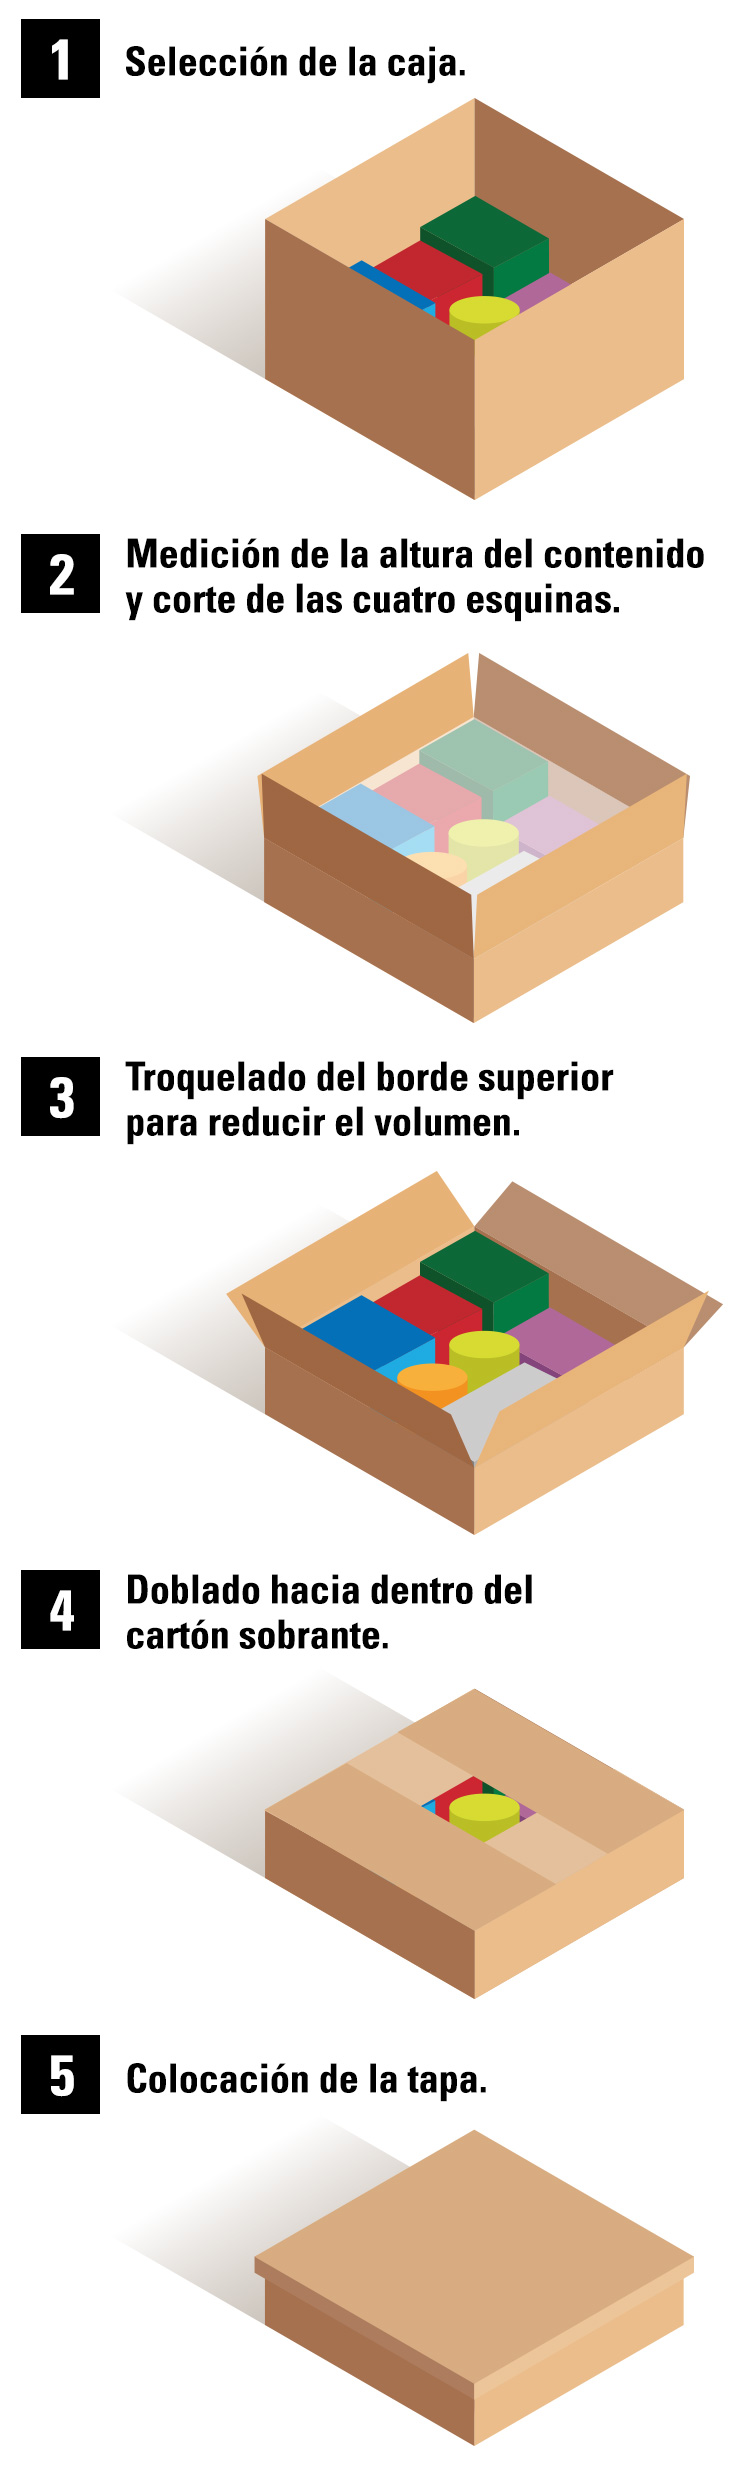 Packaging_content_images_2_ES